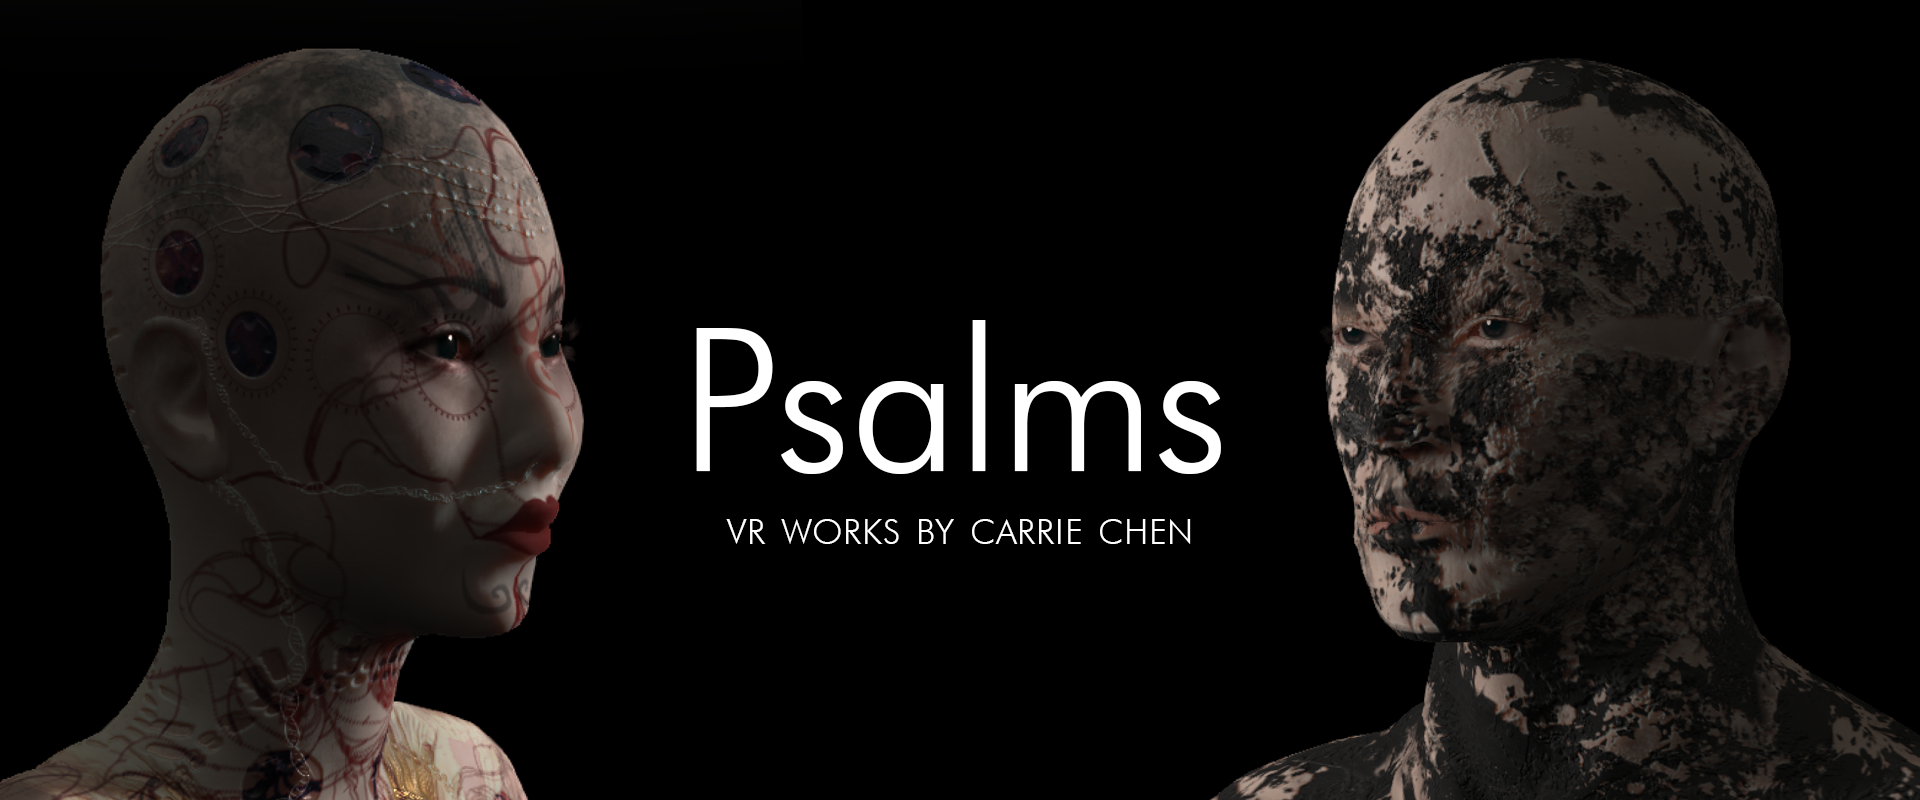 CARRIE CHEN - PSALMS